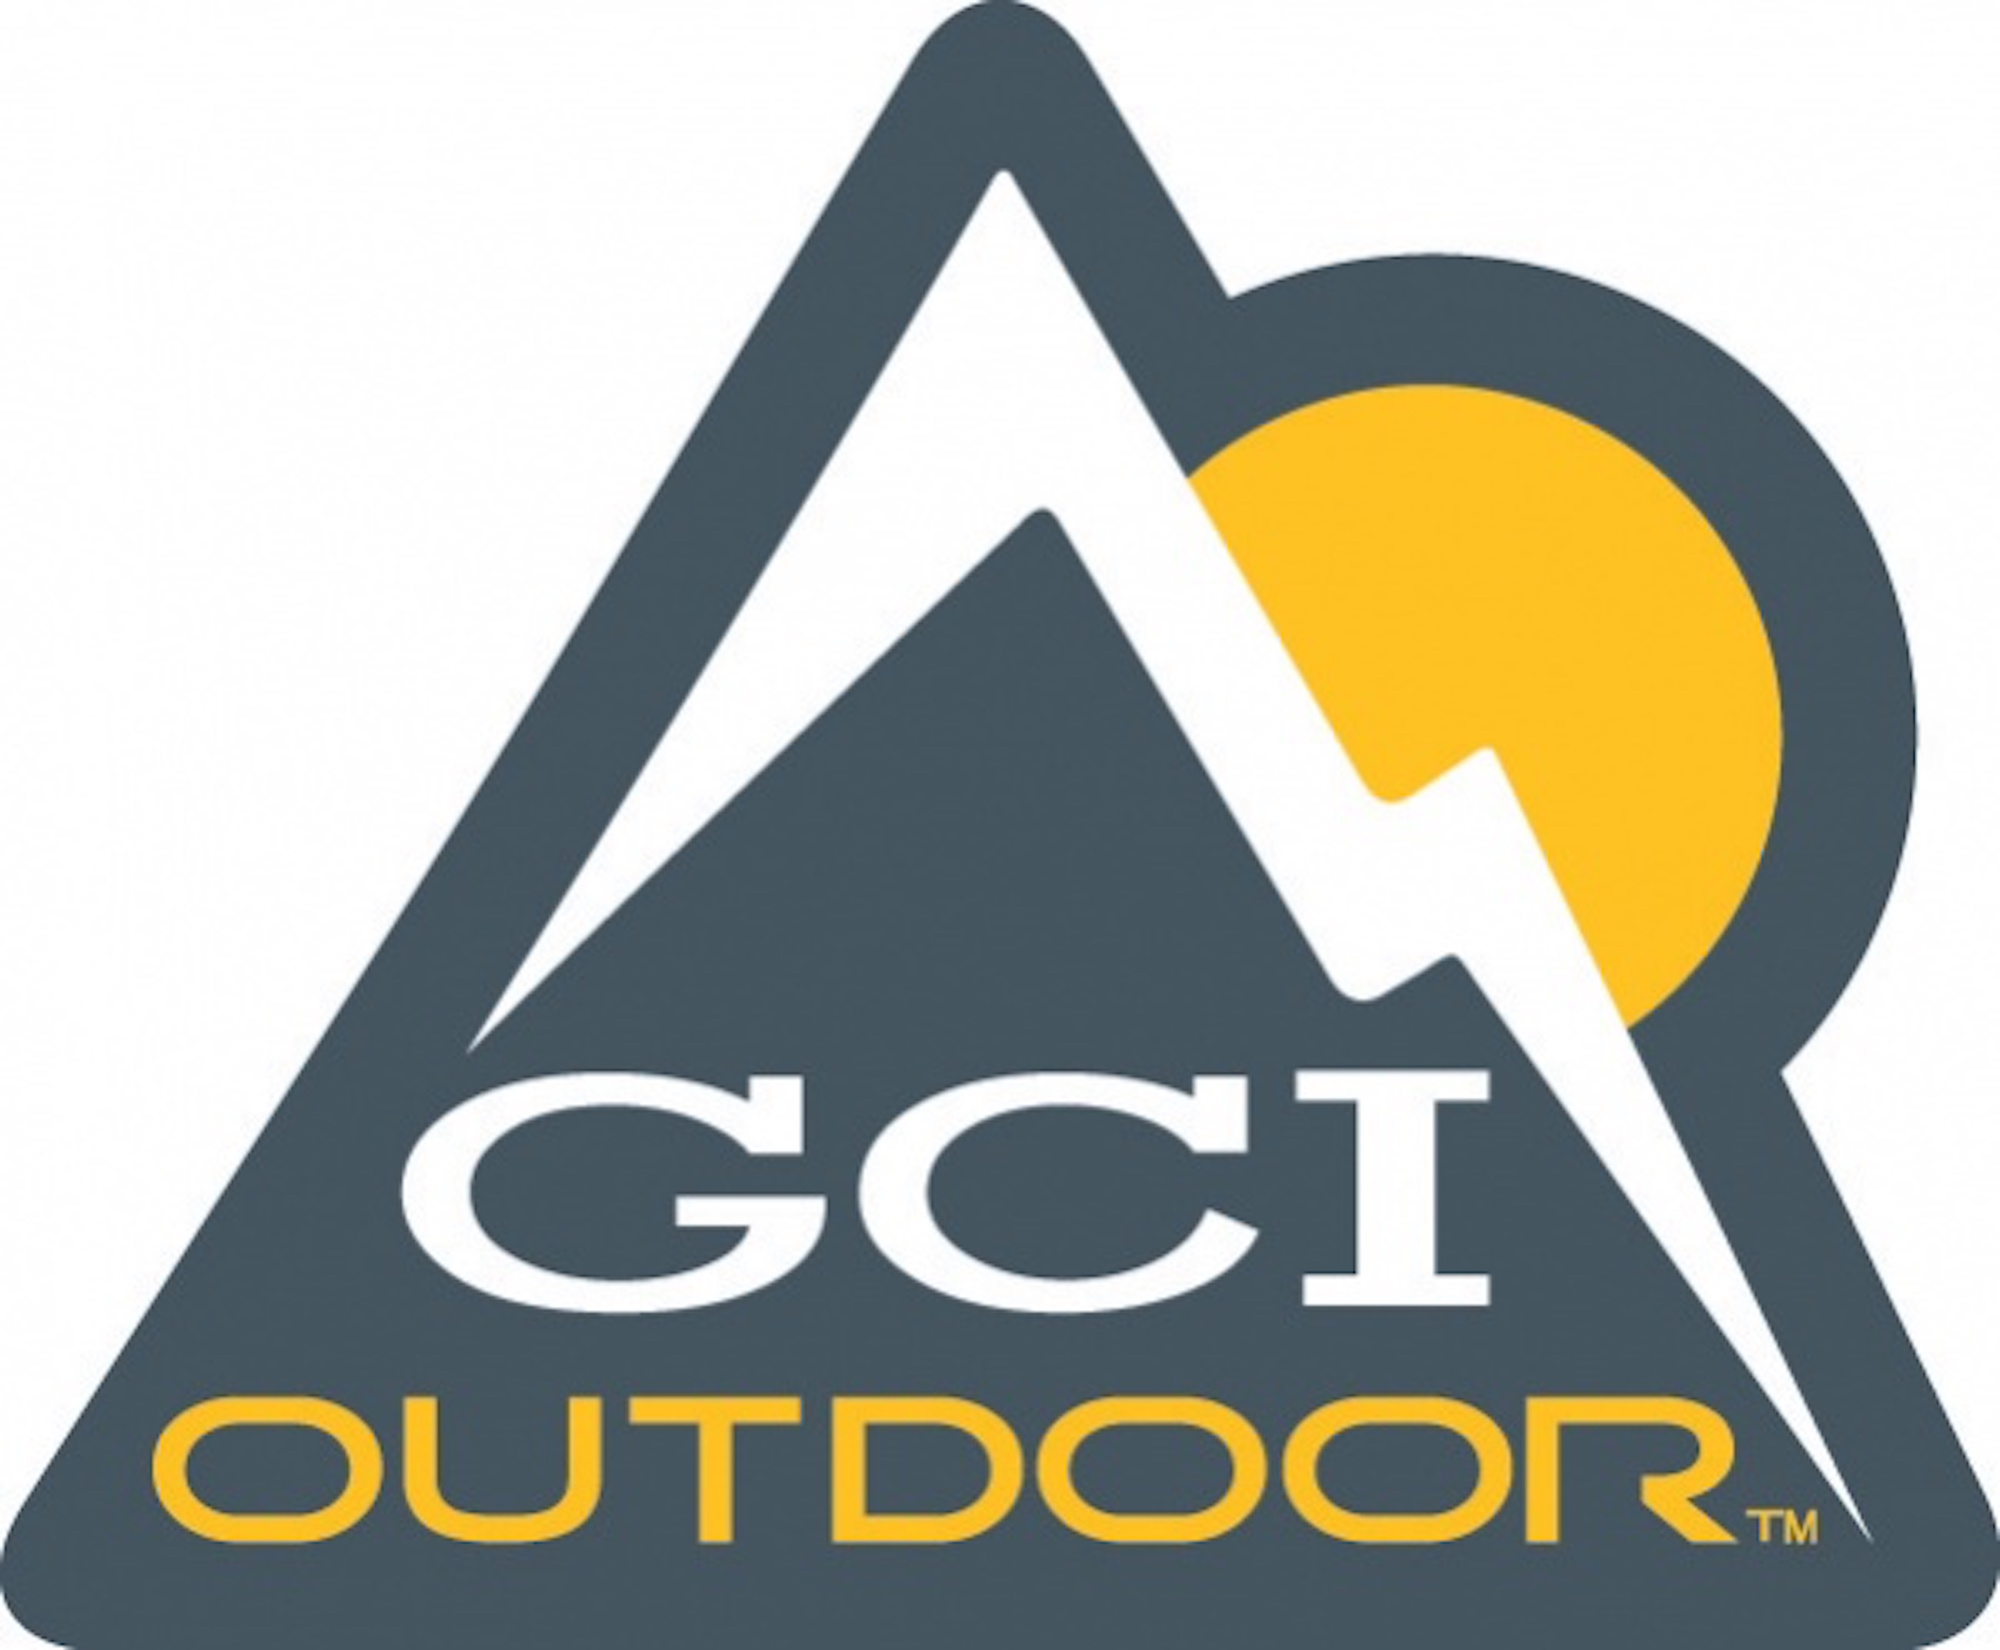 Gci Outdoor Names Verde Brand Communications As Agency Of